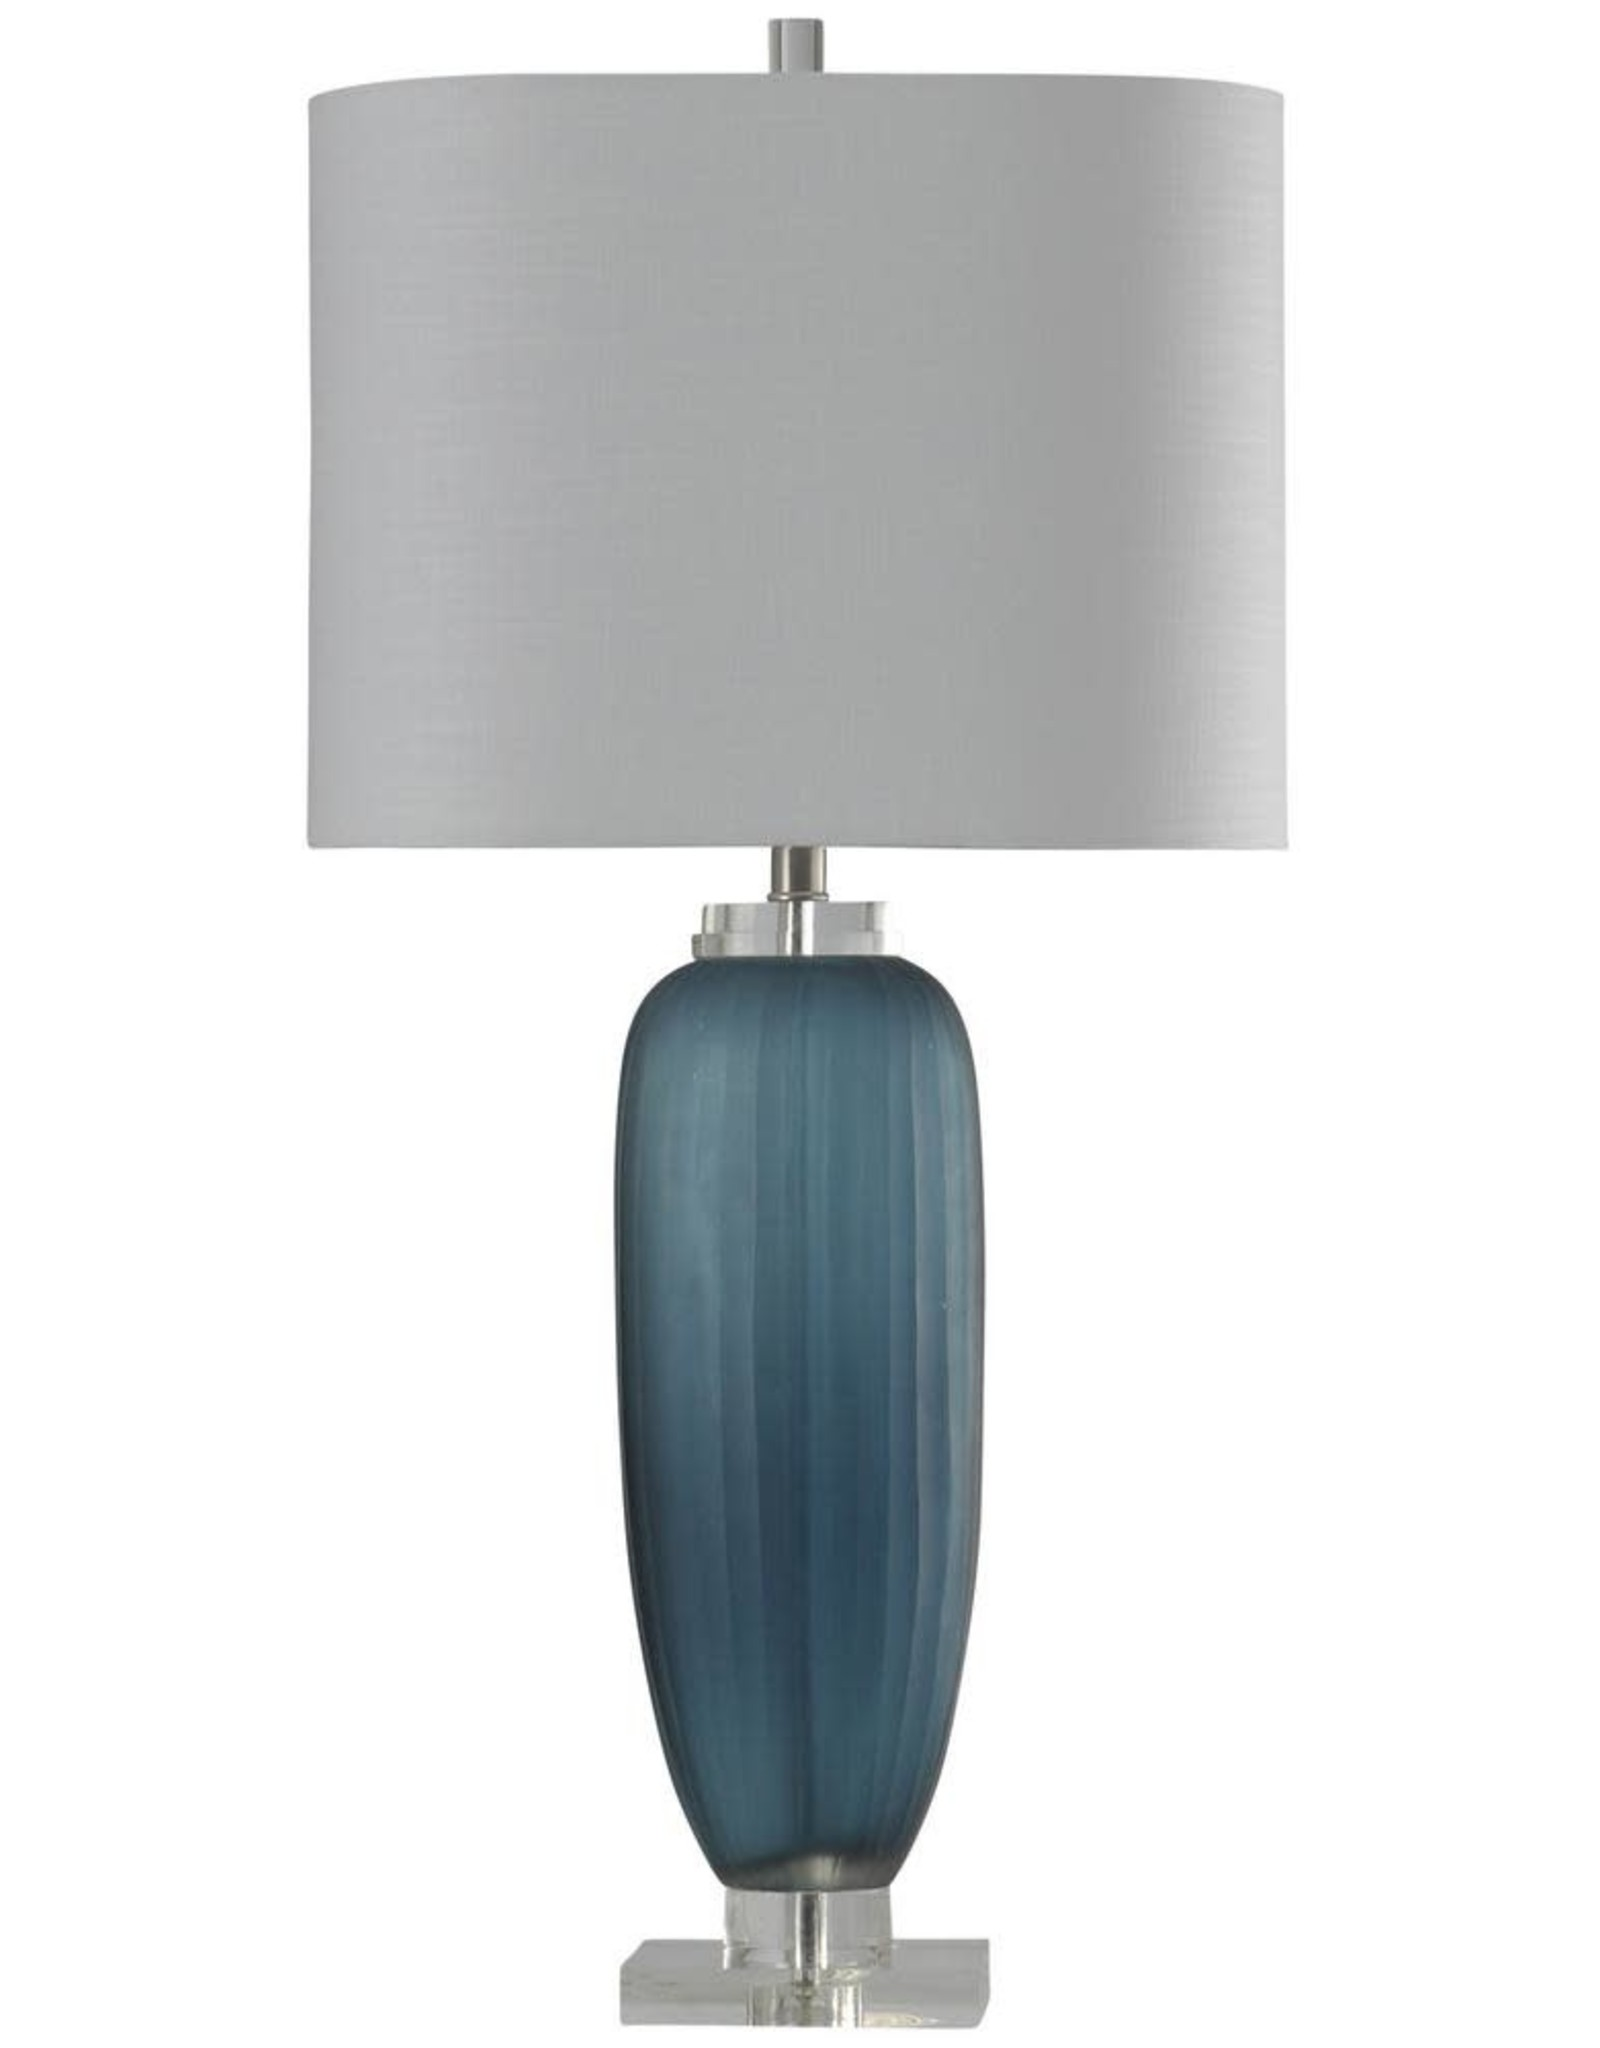 STYLECRAFT HOME CLLCTIONS 34.5 in. Nicosia Blue Table Lamp with White Hardback Fabric Shade